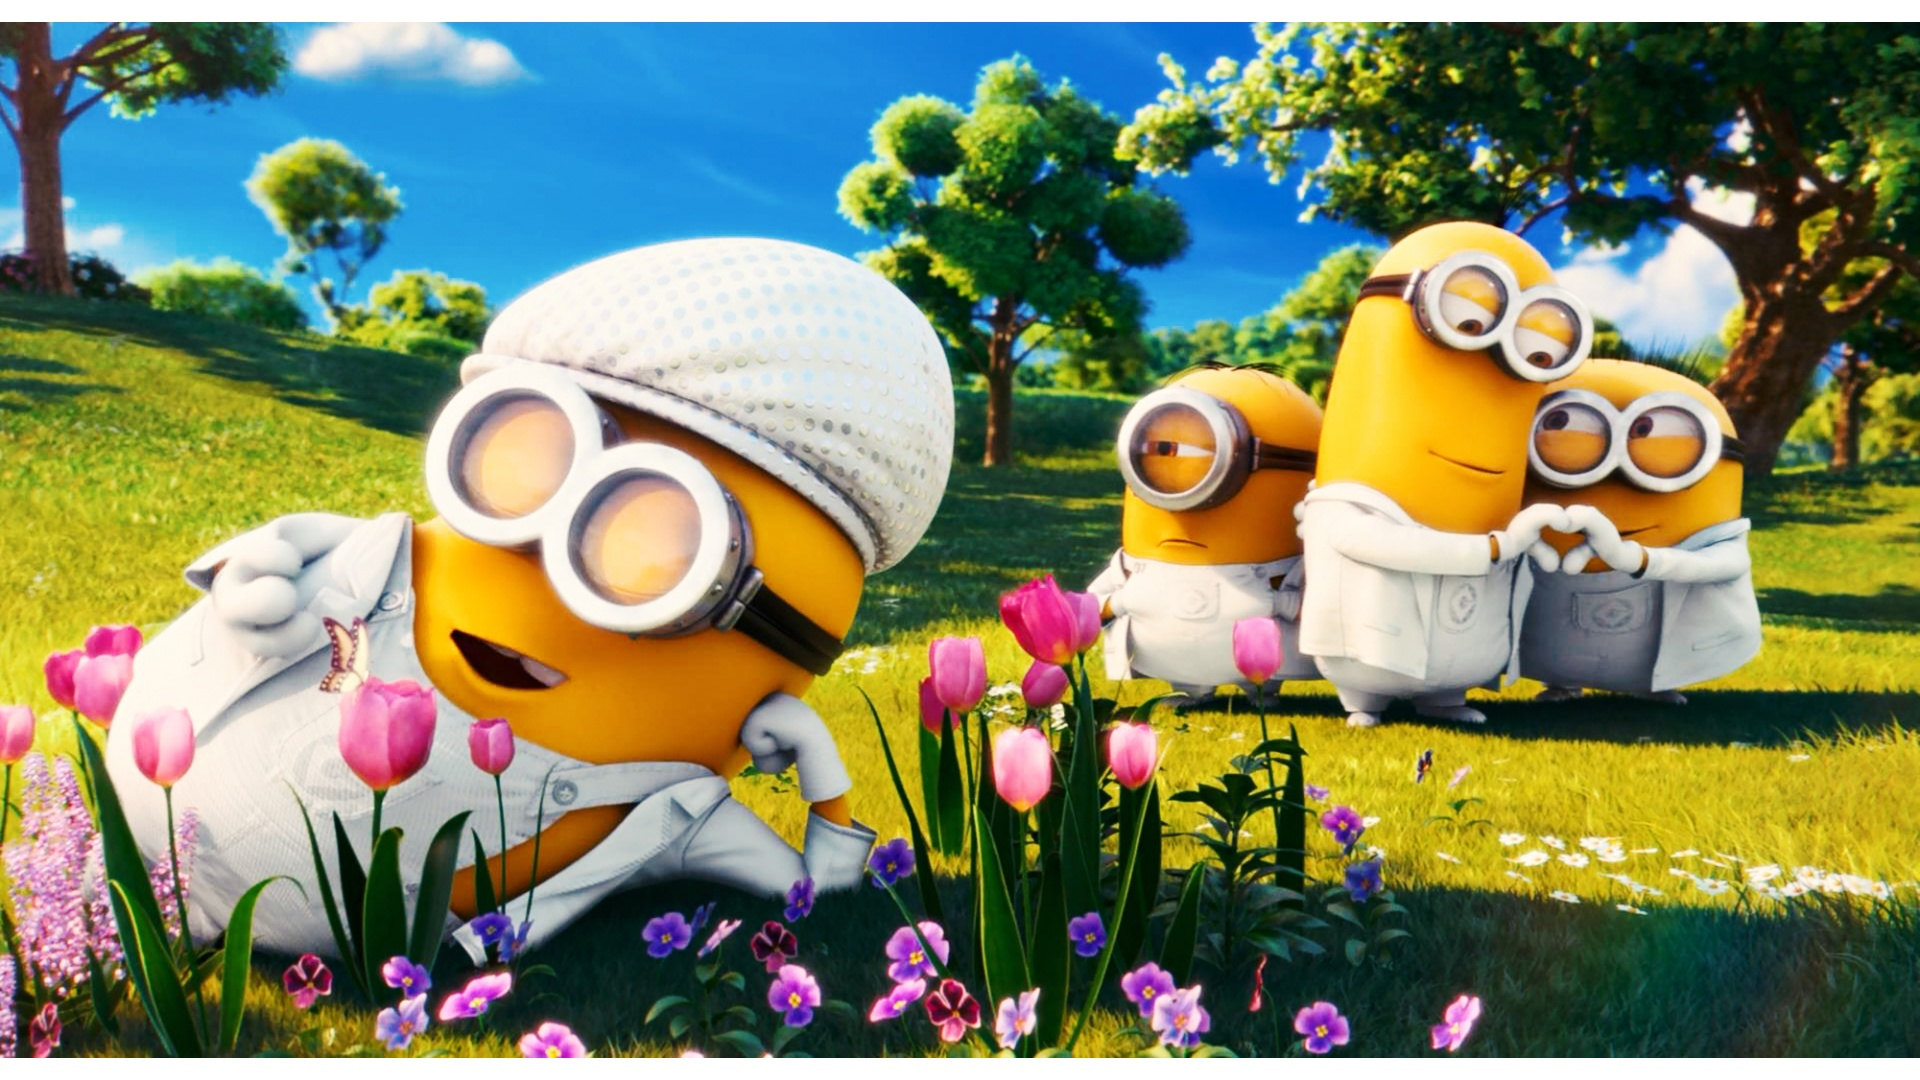 Download Romantic Minions Love Family Wallpapers Get and Search 1920x1080